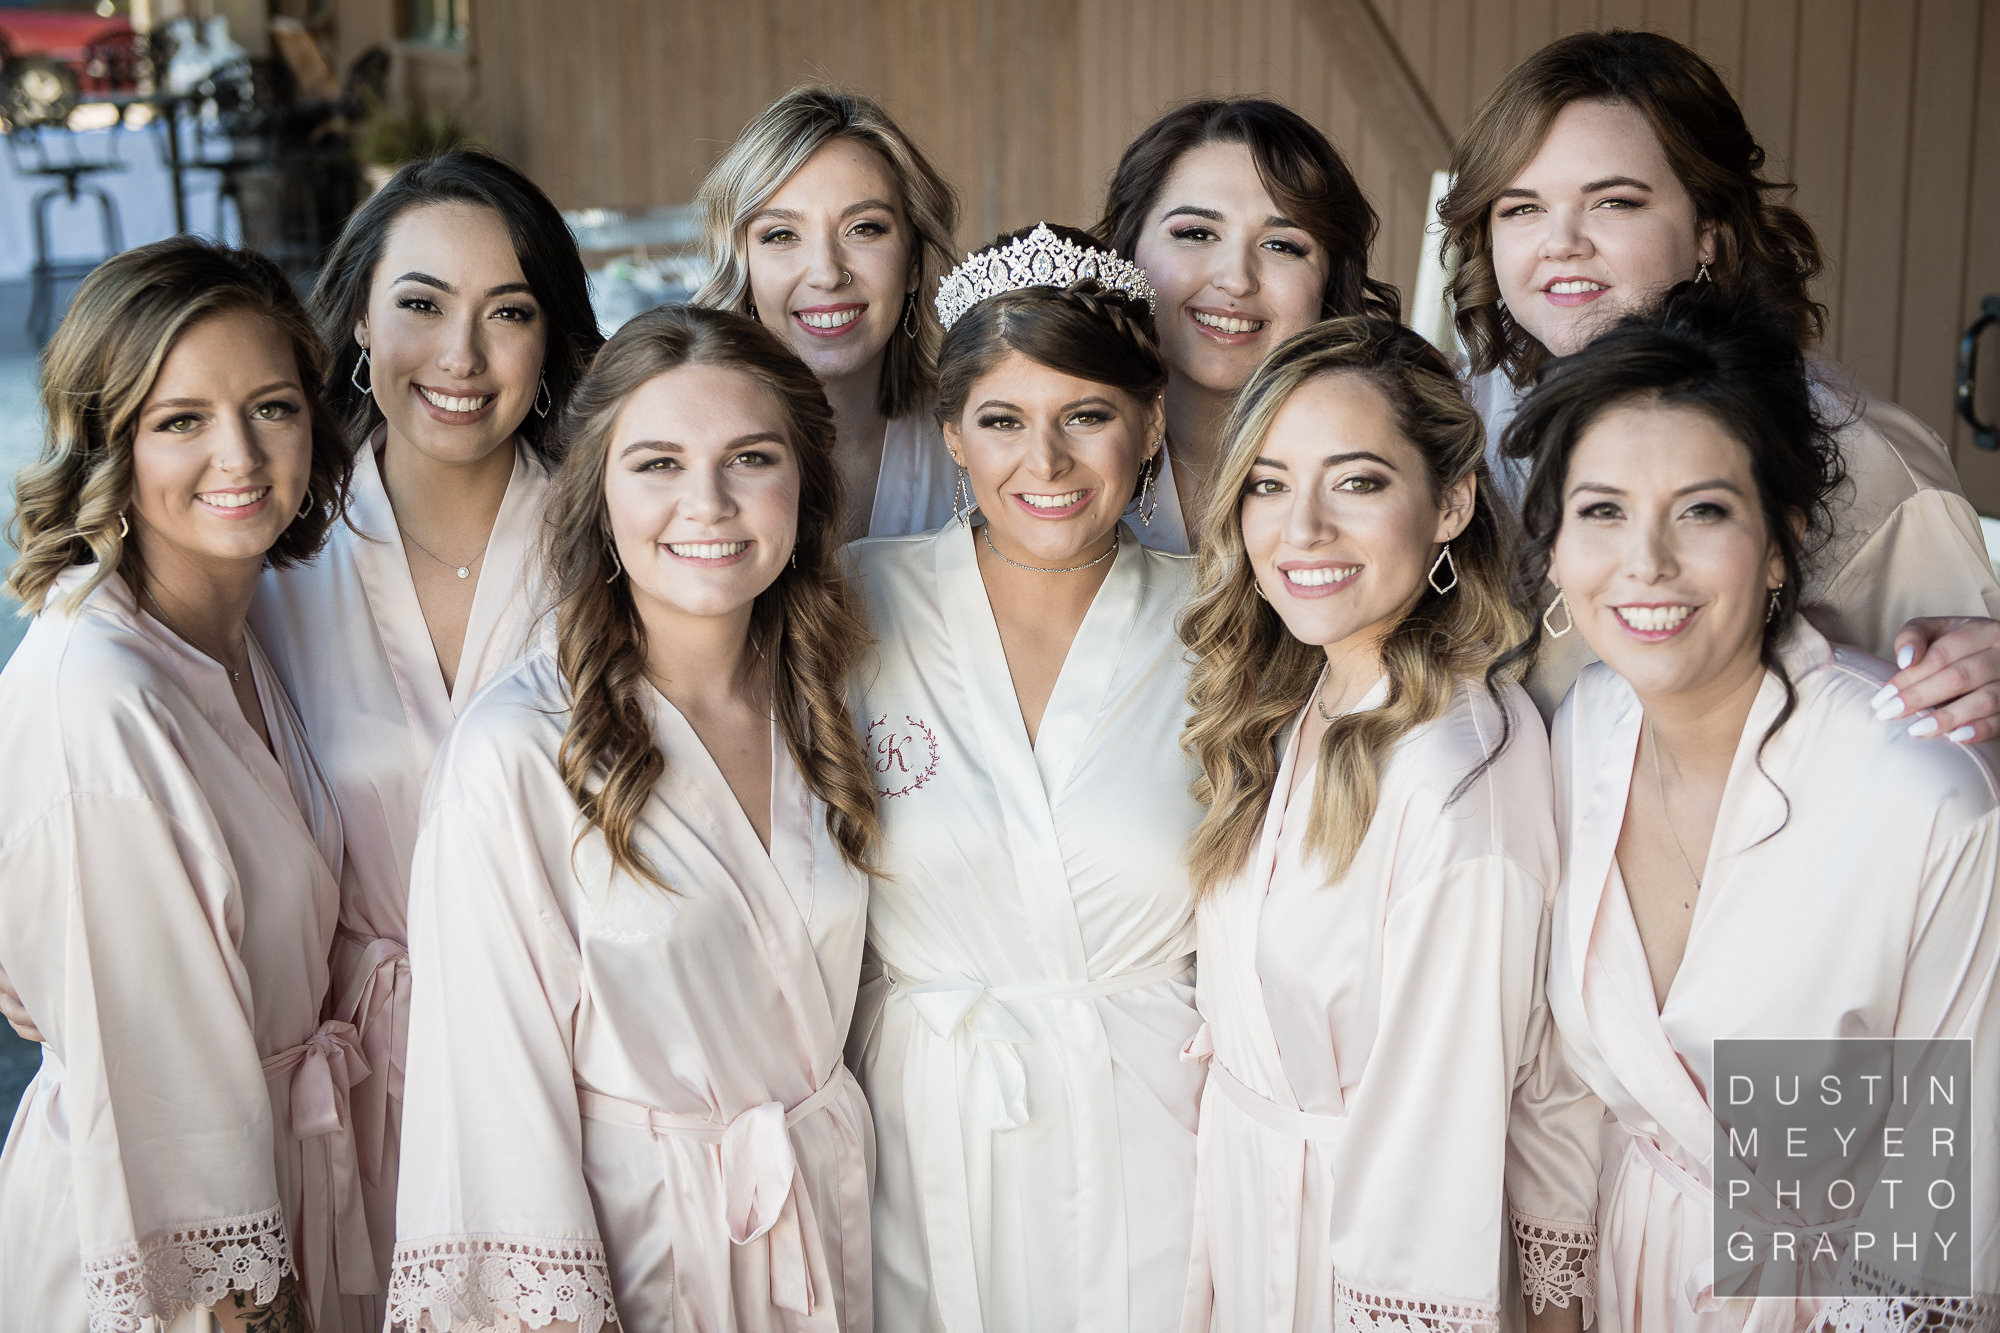 The bride and her bridesmaids in their matching wedding day robes